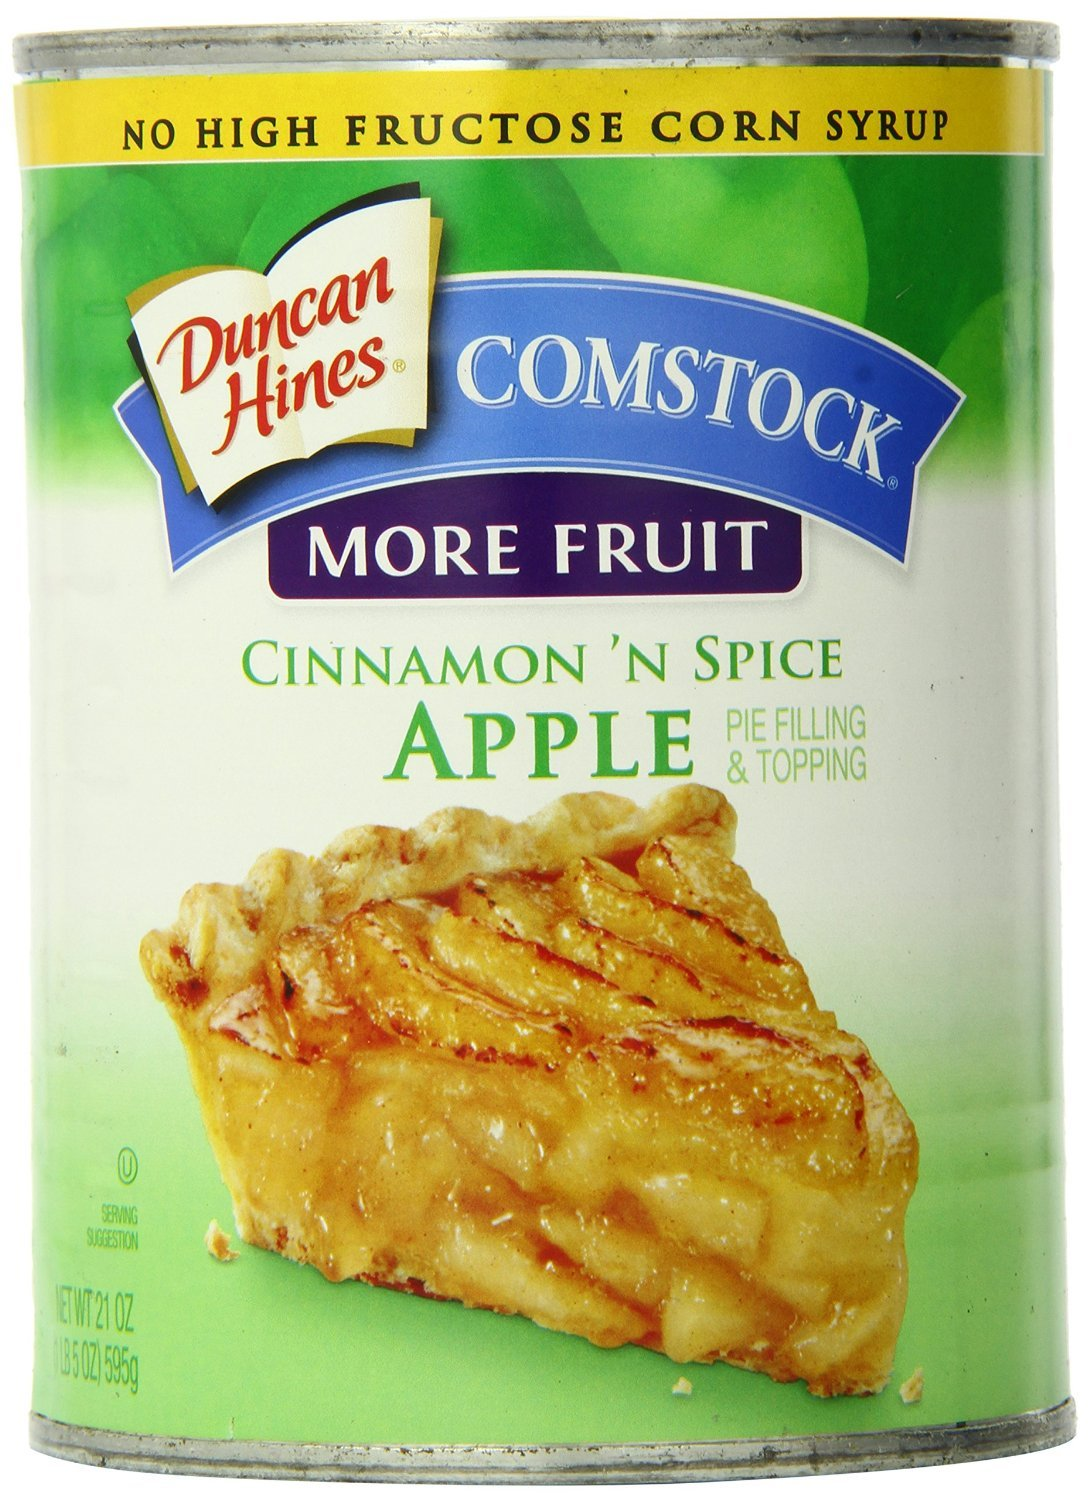 Comstock More Fruit Pie Filling & Topping, Cinnamon 'N Spice Apple, 21 Ounce